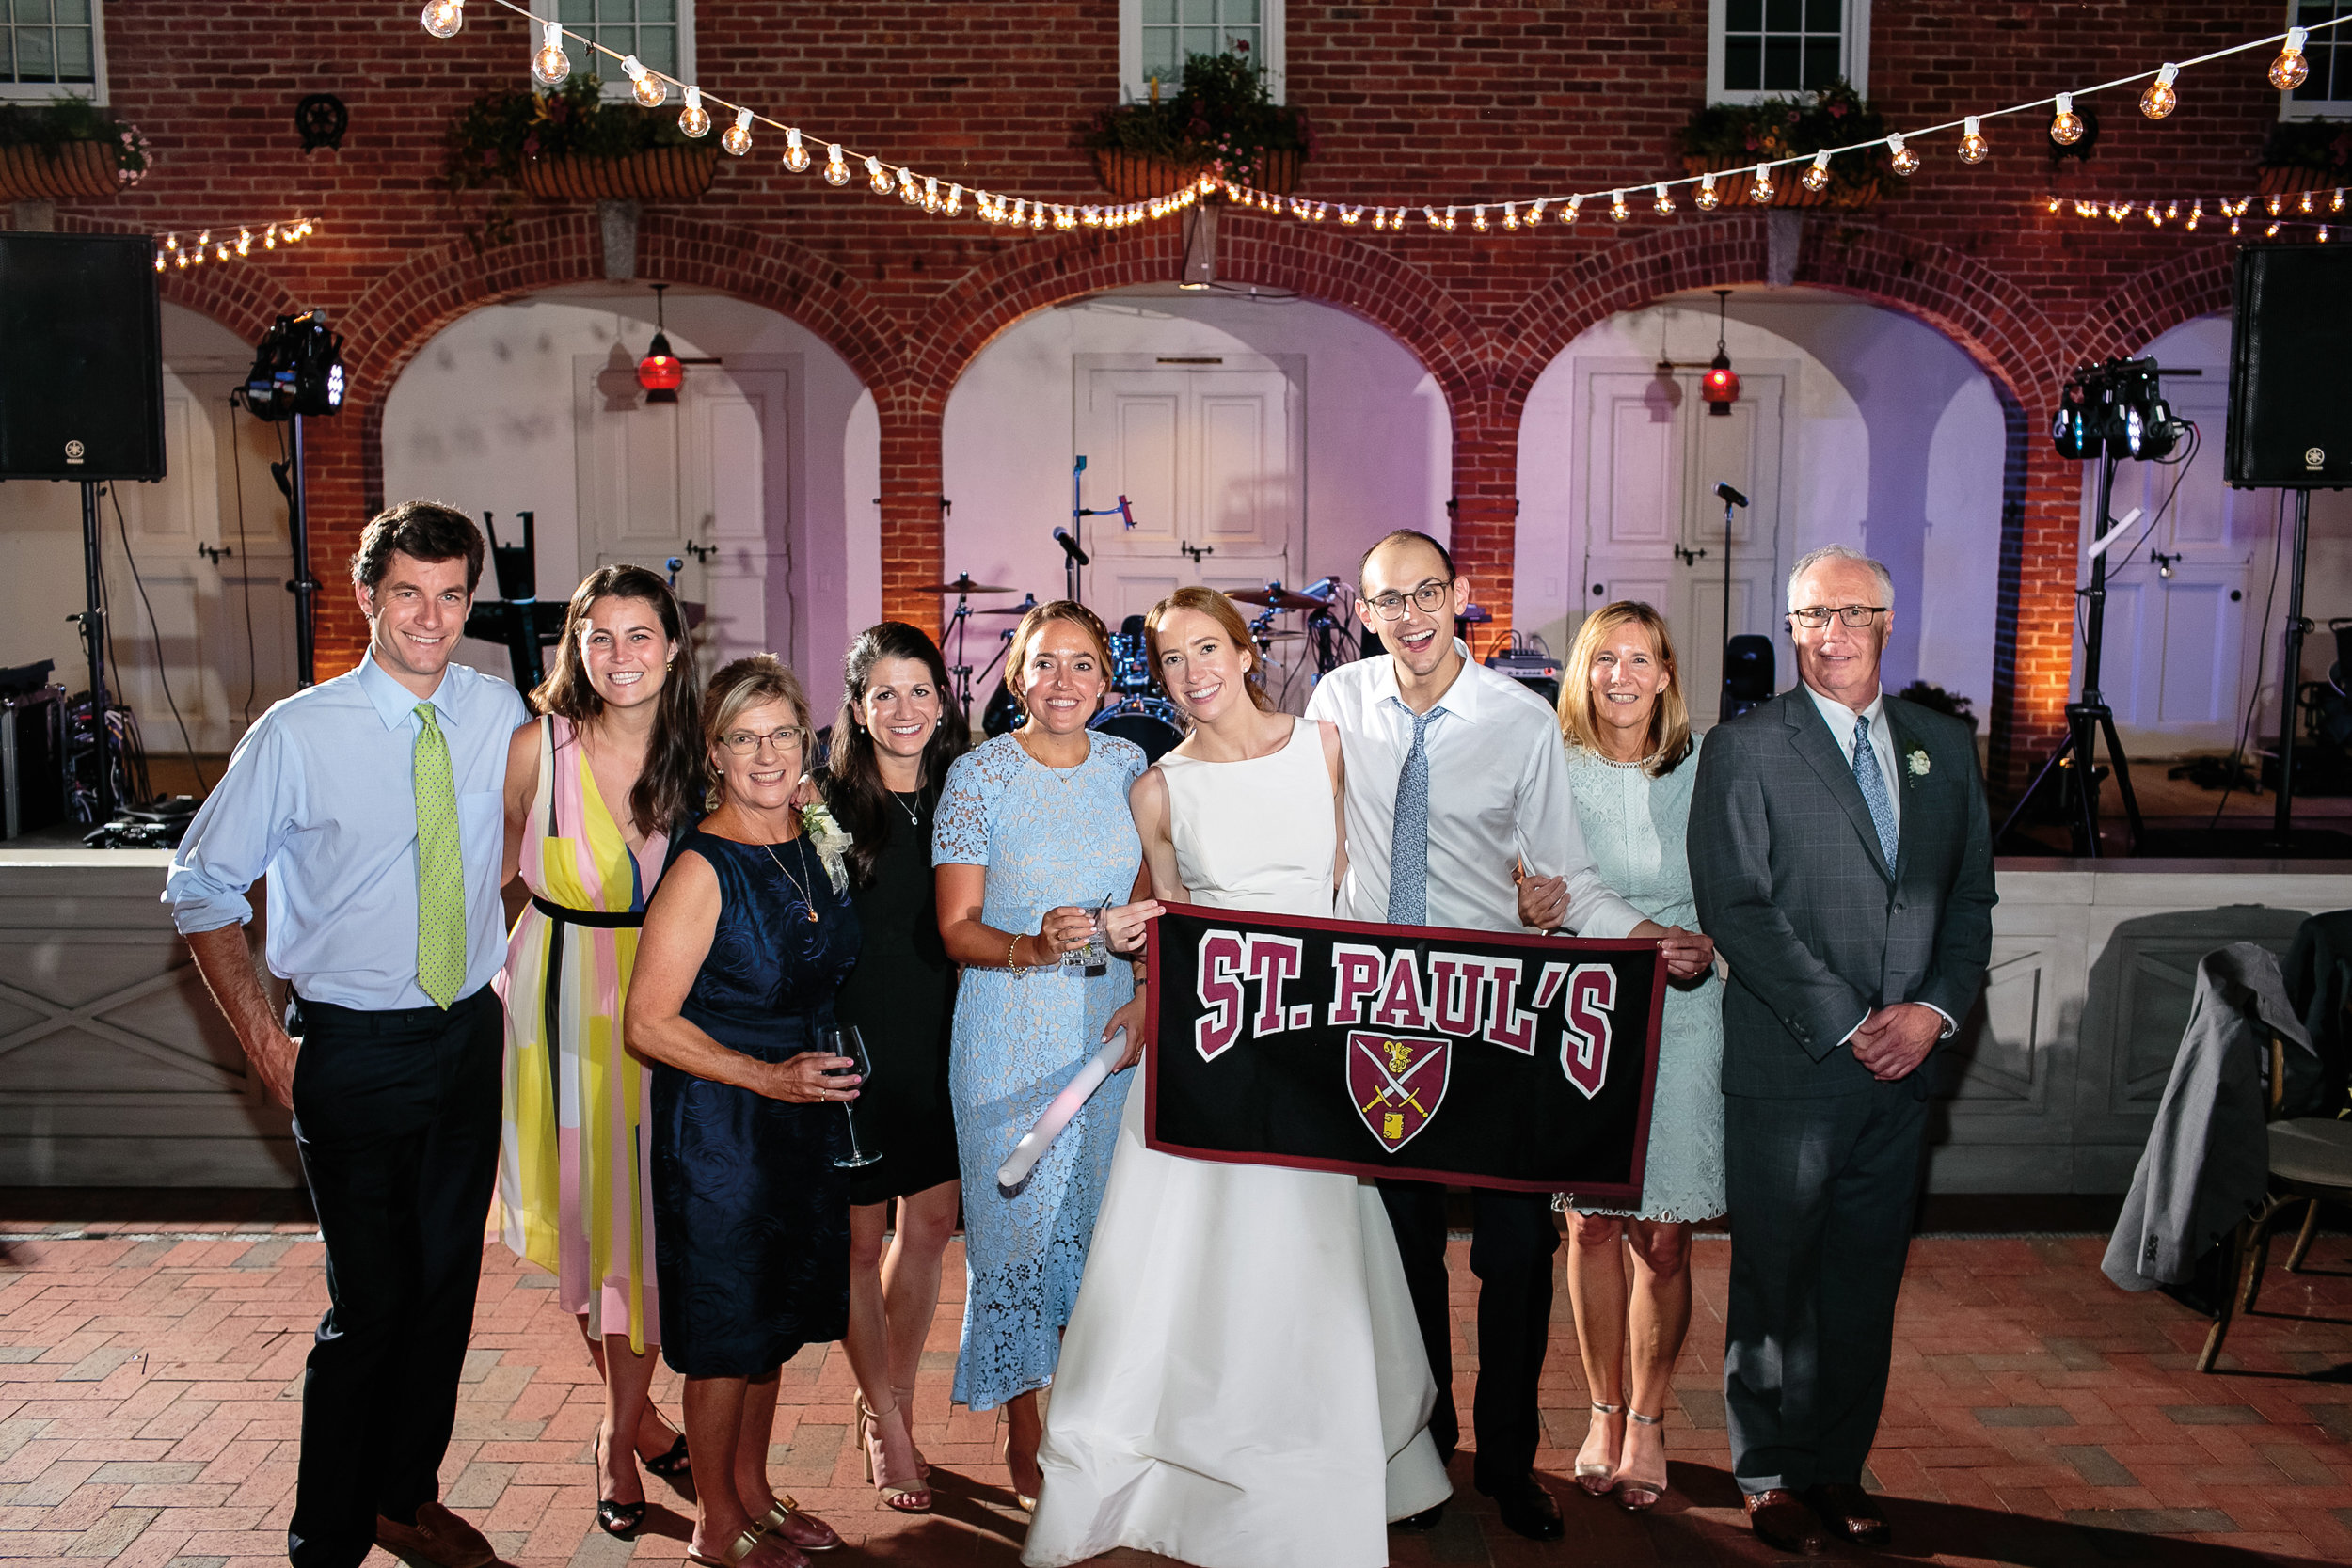 Kaye Verville '07 married Edward Gottfriend in Knoxville, Tenn., in September. Paulies included (l. to r.): Nolan Jennings '07, Carrie Read '07, Sarah Lee (Addington) Verville '74, Morgan (Nelson) Shaughnessy '07, Charlotte Hickey '07, the bride and groom, Margo (Addington) Urey '80, and Mike Verville '74.